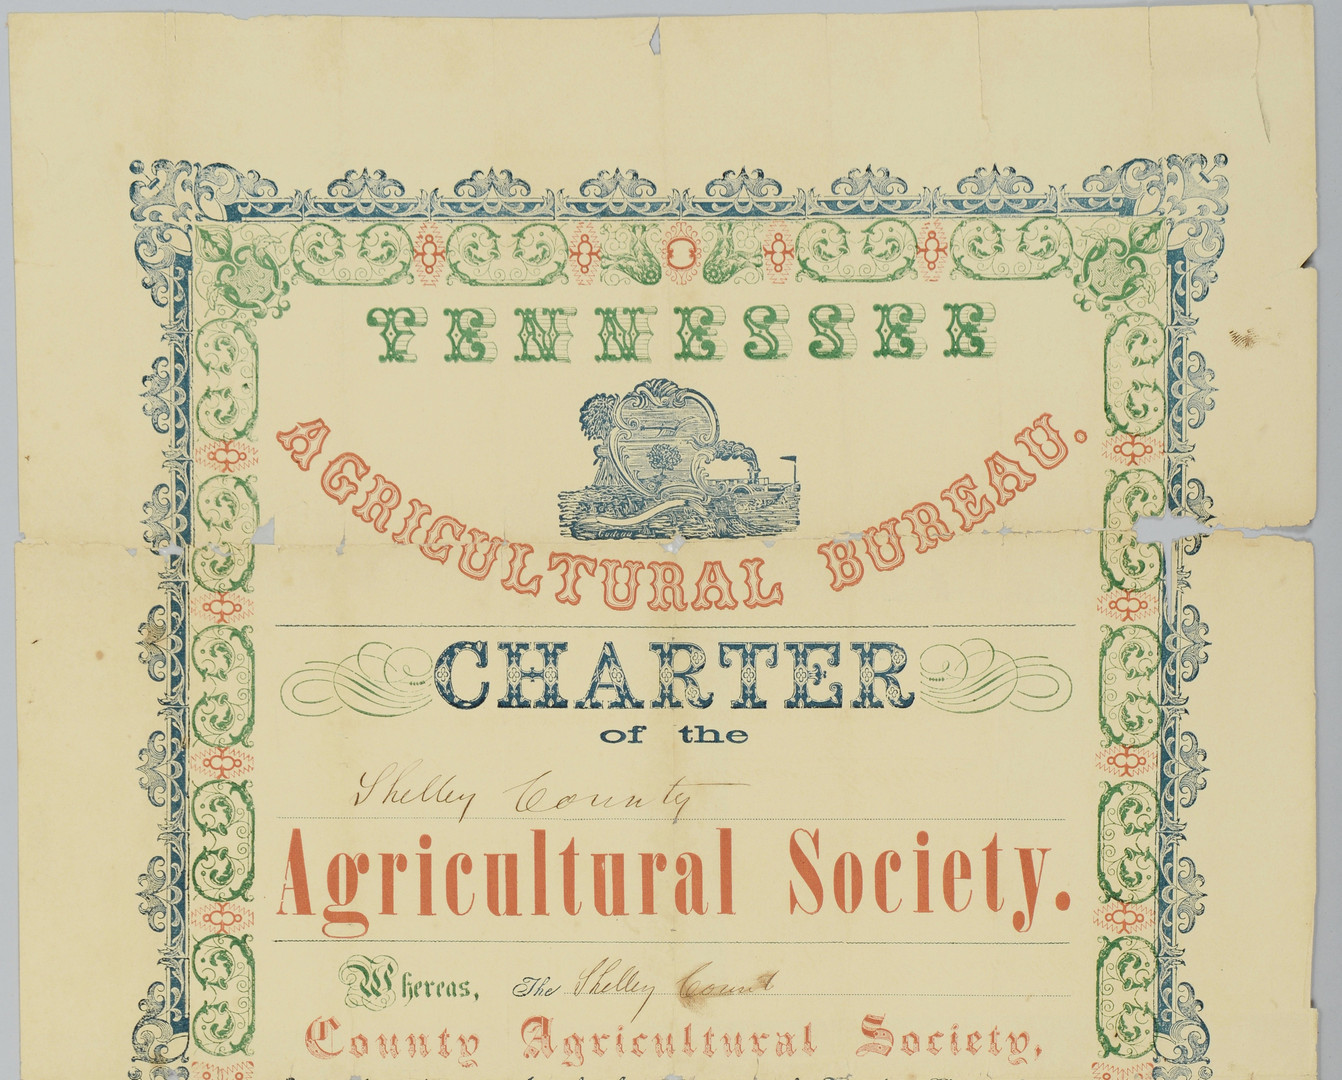 Lot 295: TN Agricultural Charter, 1855, signed by A. Johnso